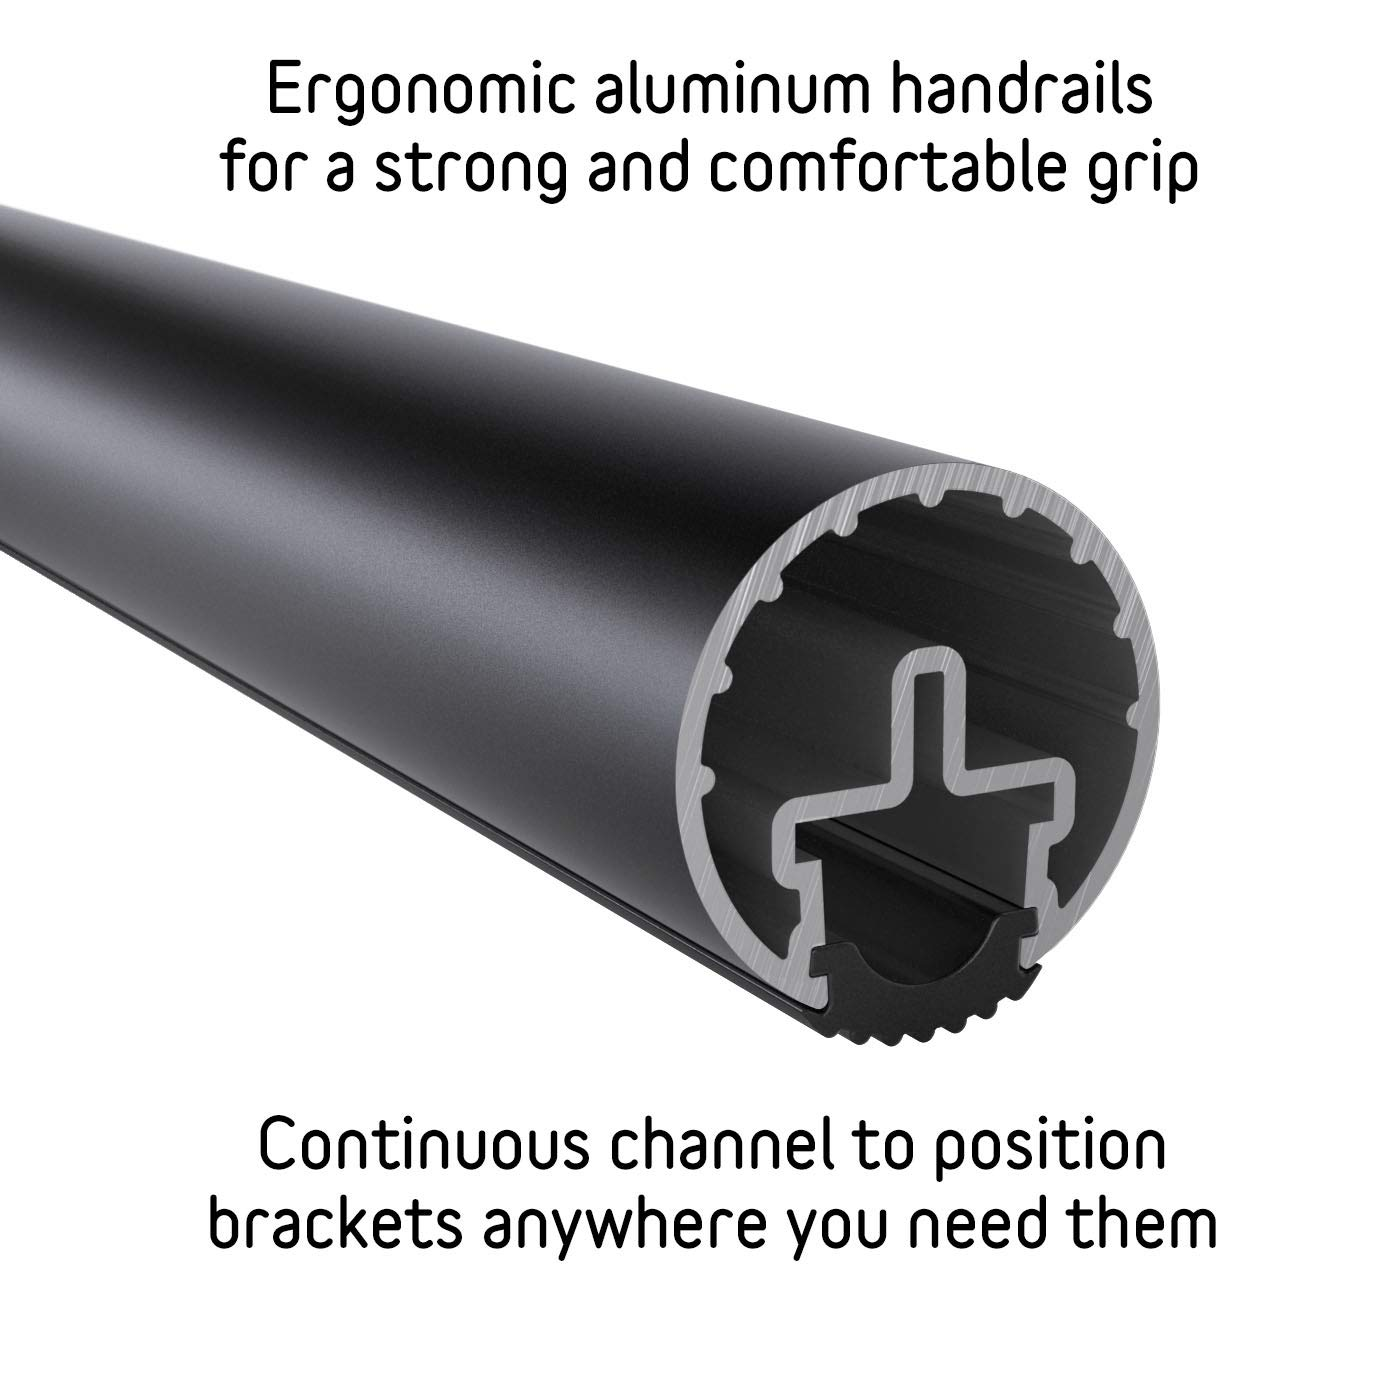 1.6 Round 4 ft for Promenaid Handrail System Only Satin Black Anodized Aluminum Handrail Tubing with Anti-Slip Insert